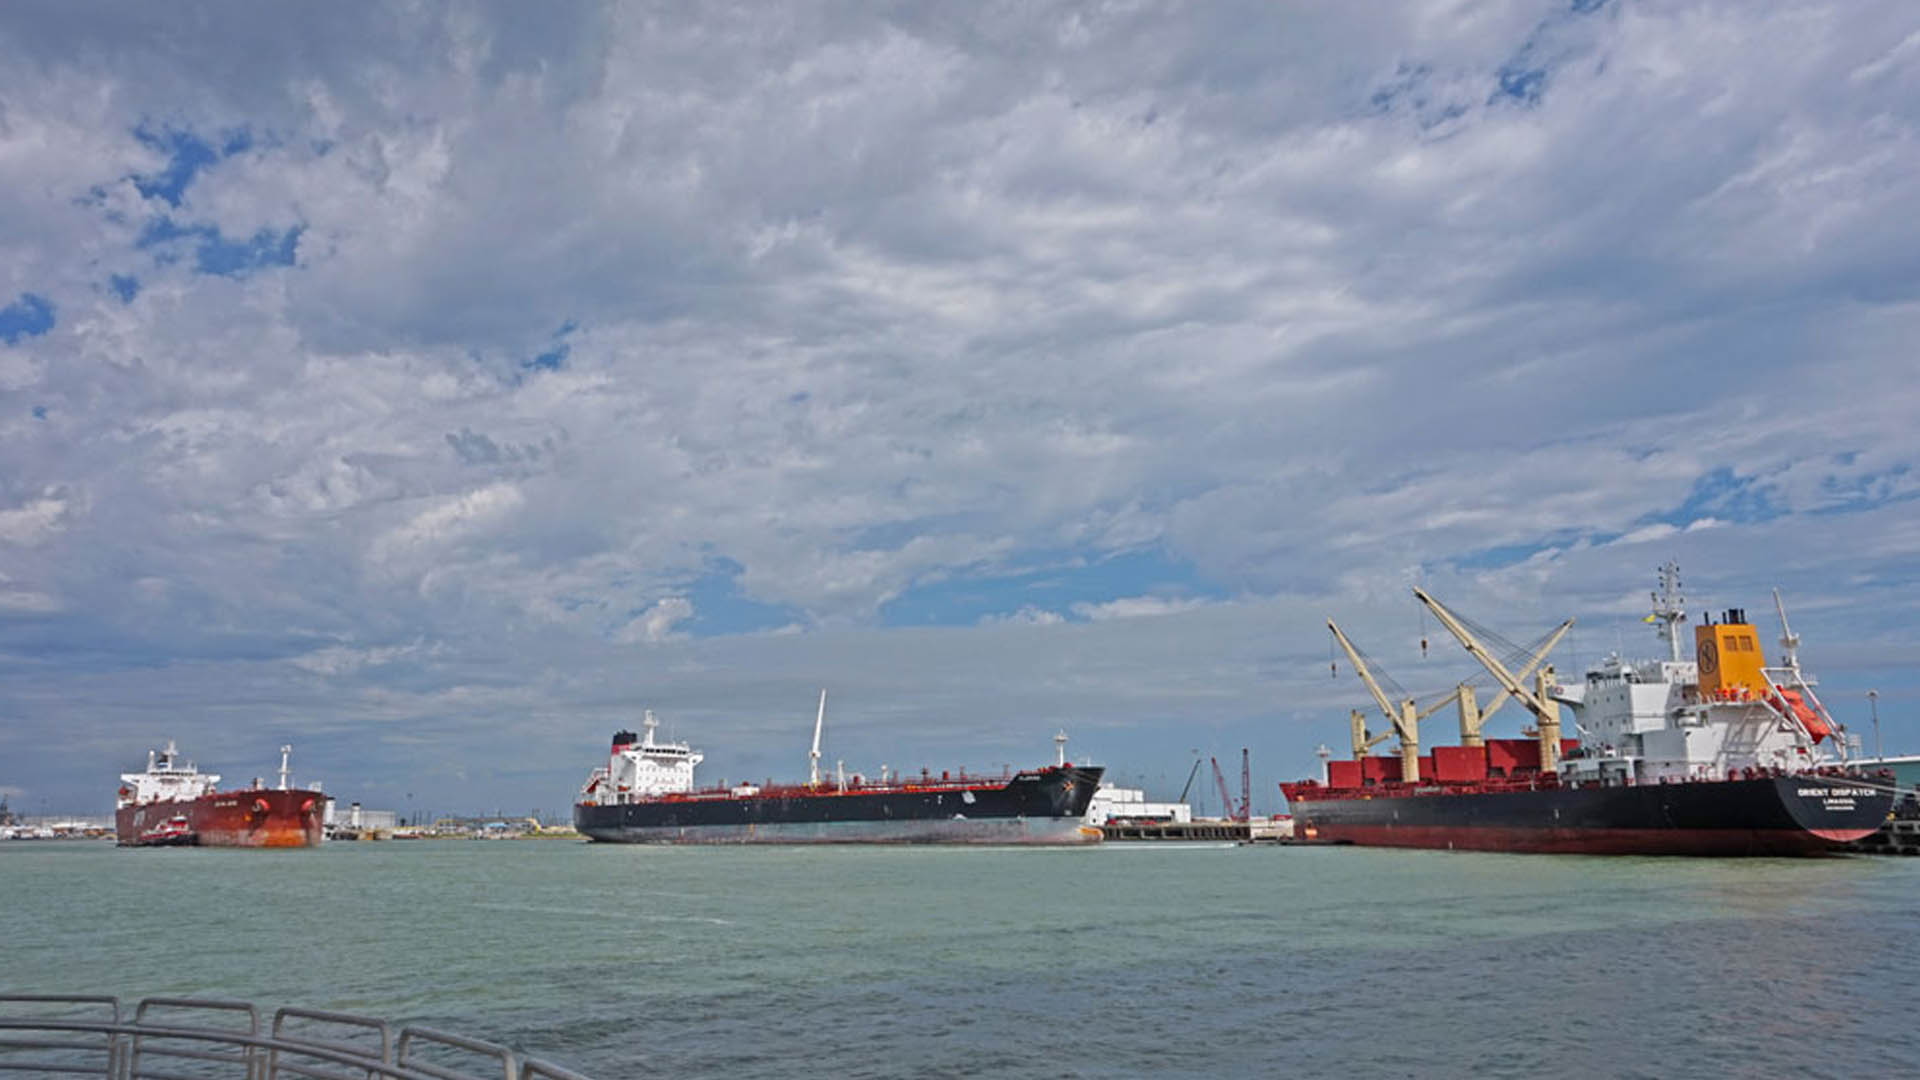 Eagle Ford Terminals Receives First Vessel at New Dock